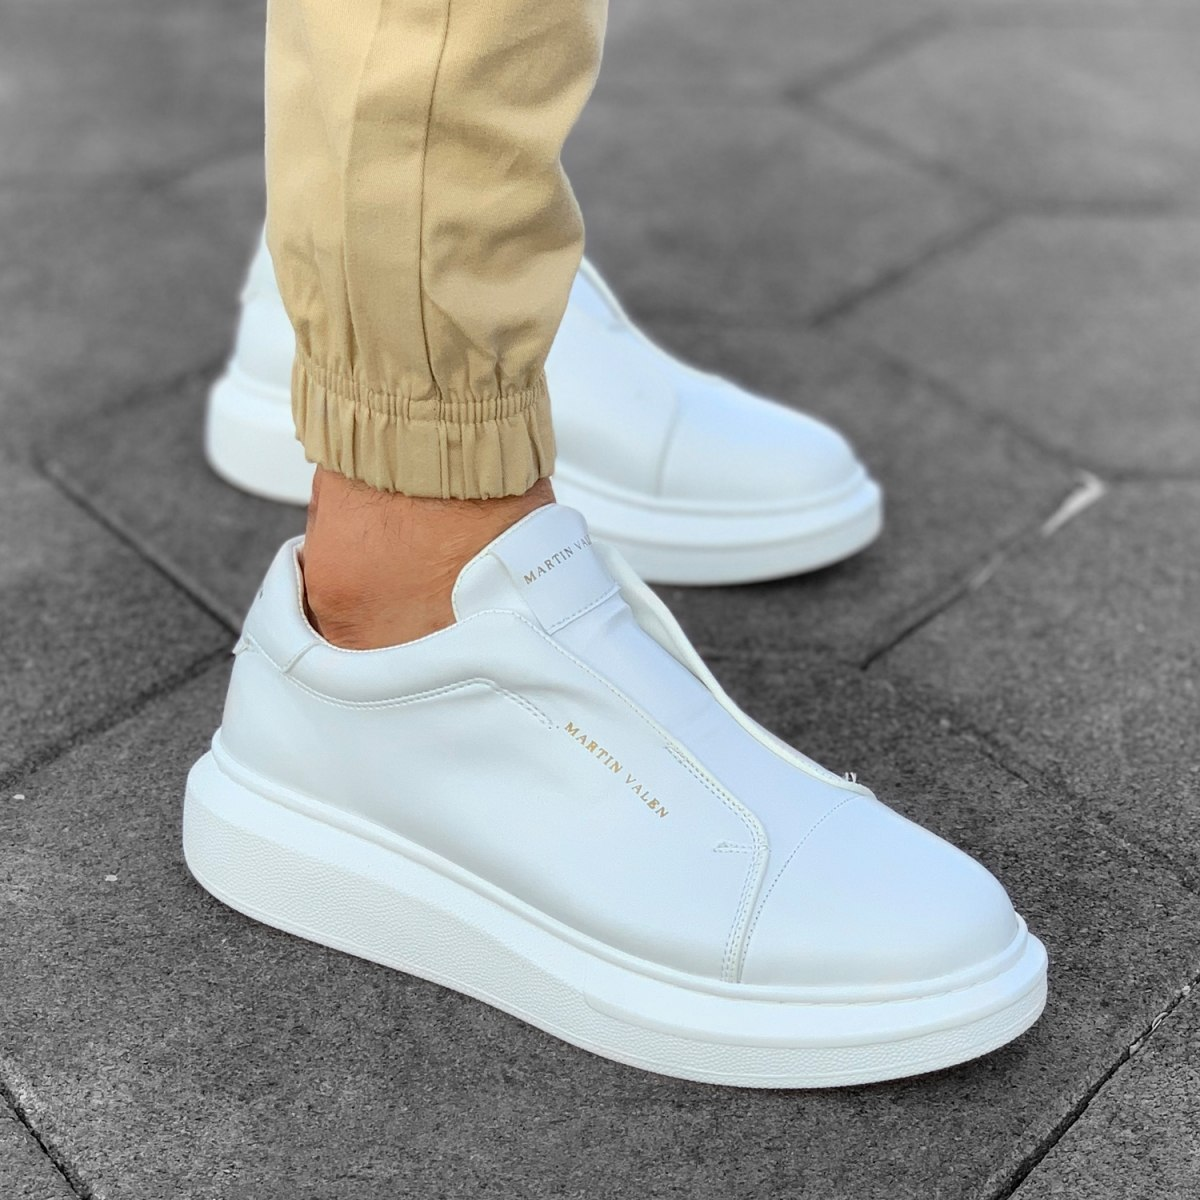 Slip-on Sneakers in White